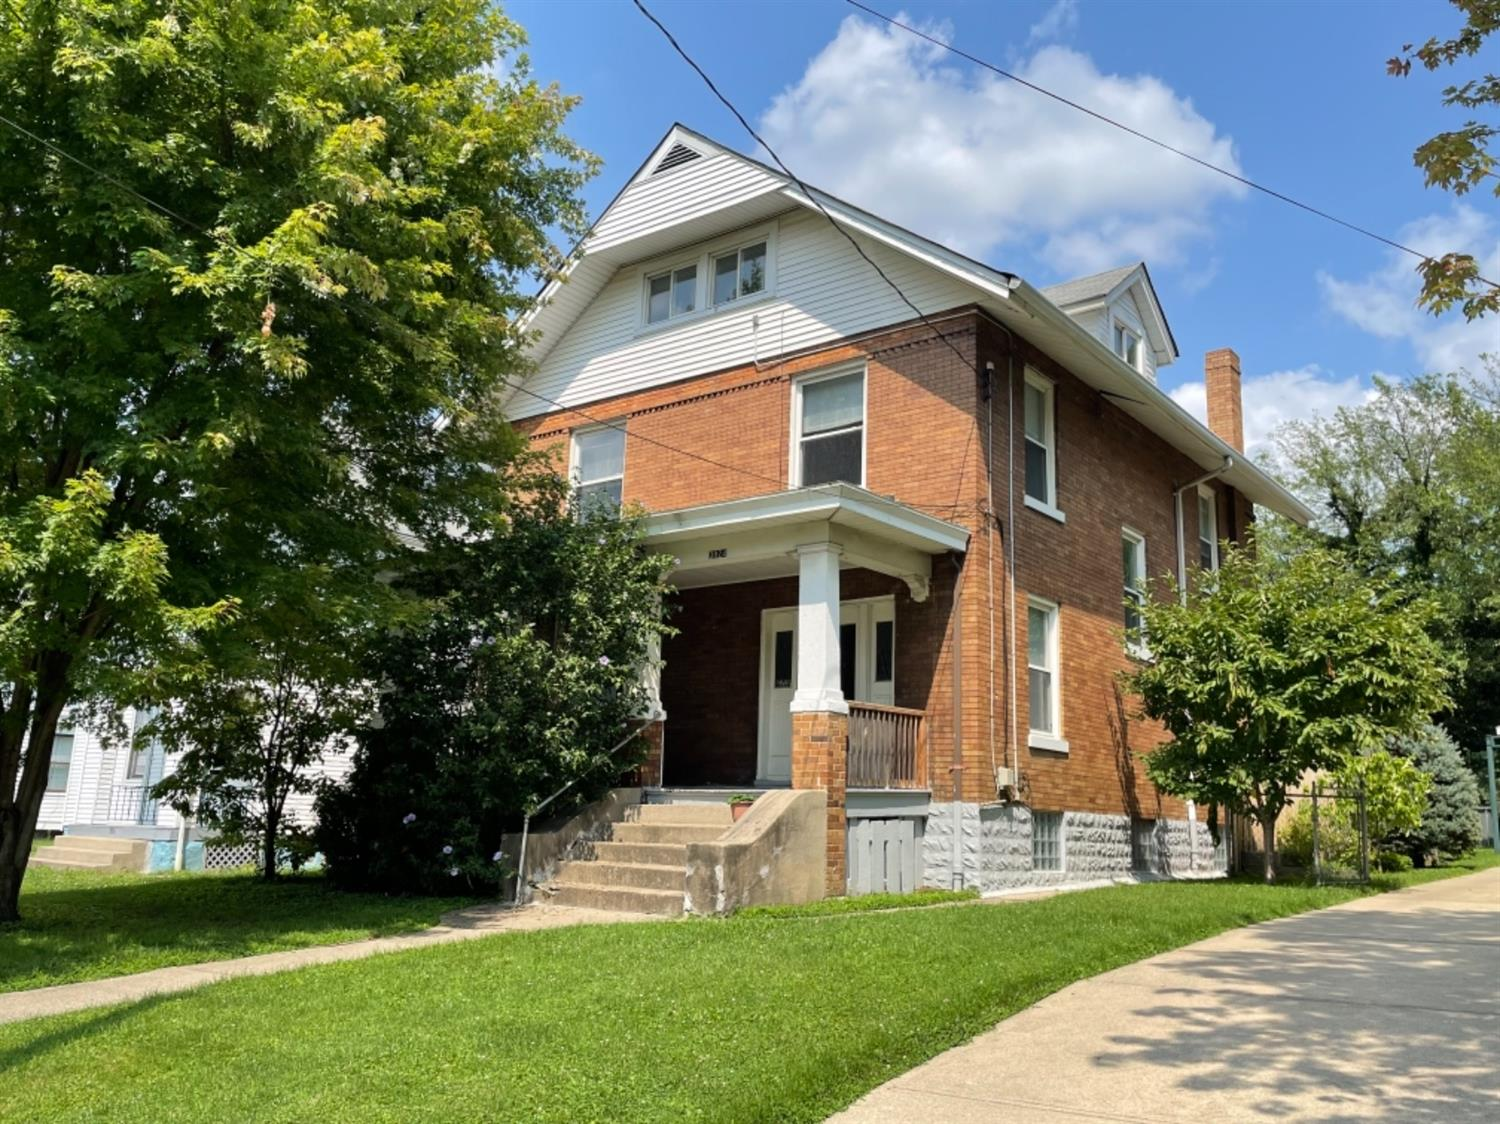 3924 Lindley Avenue, Norwood, Ohio 45212, 6 Bedrooms Bedrooms, 10 Rooms Rooms,2 BathroomsBathrooms,Single Family Residence,For Sale,Lindley,1706150